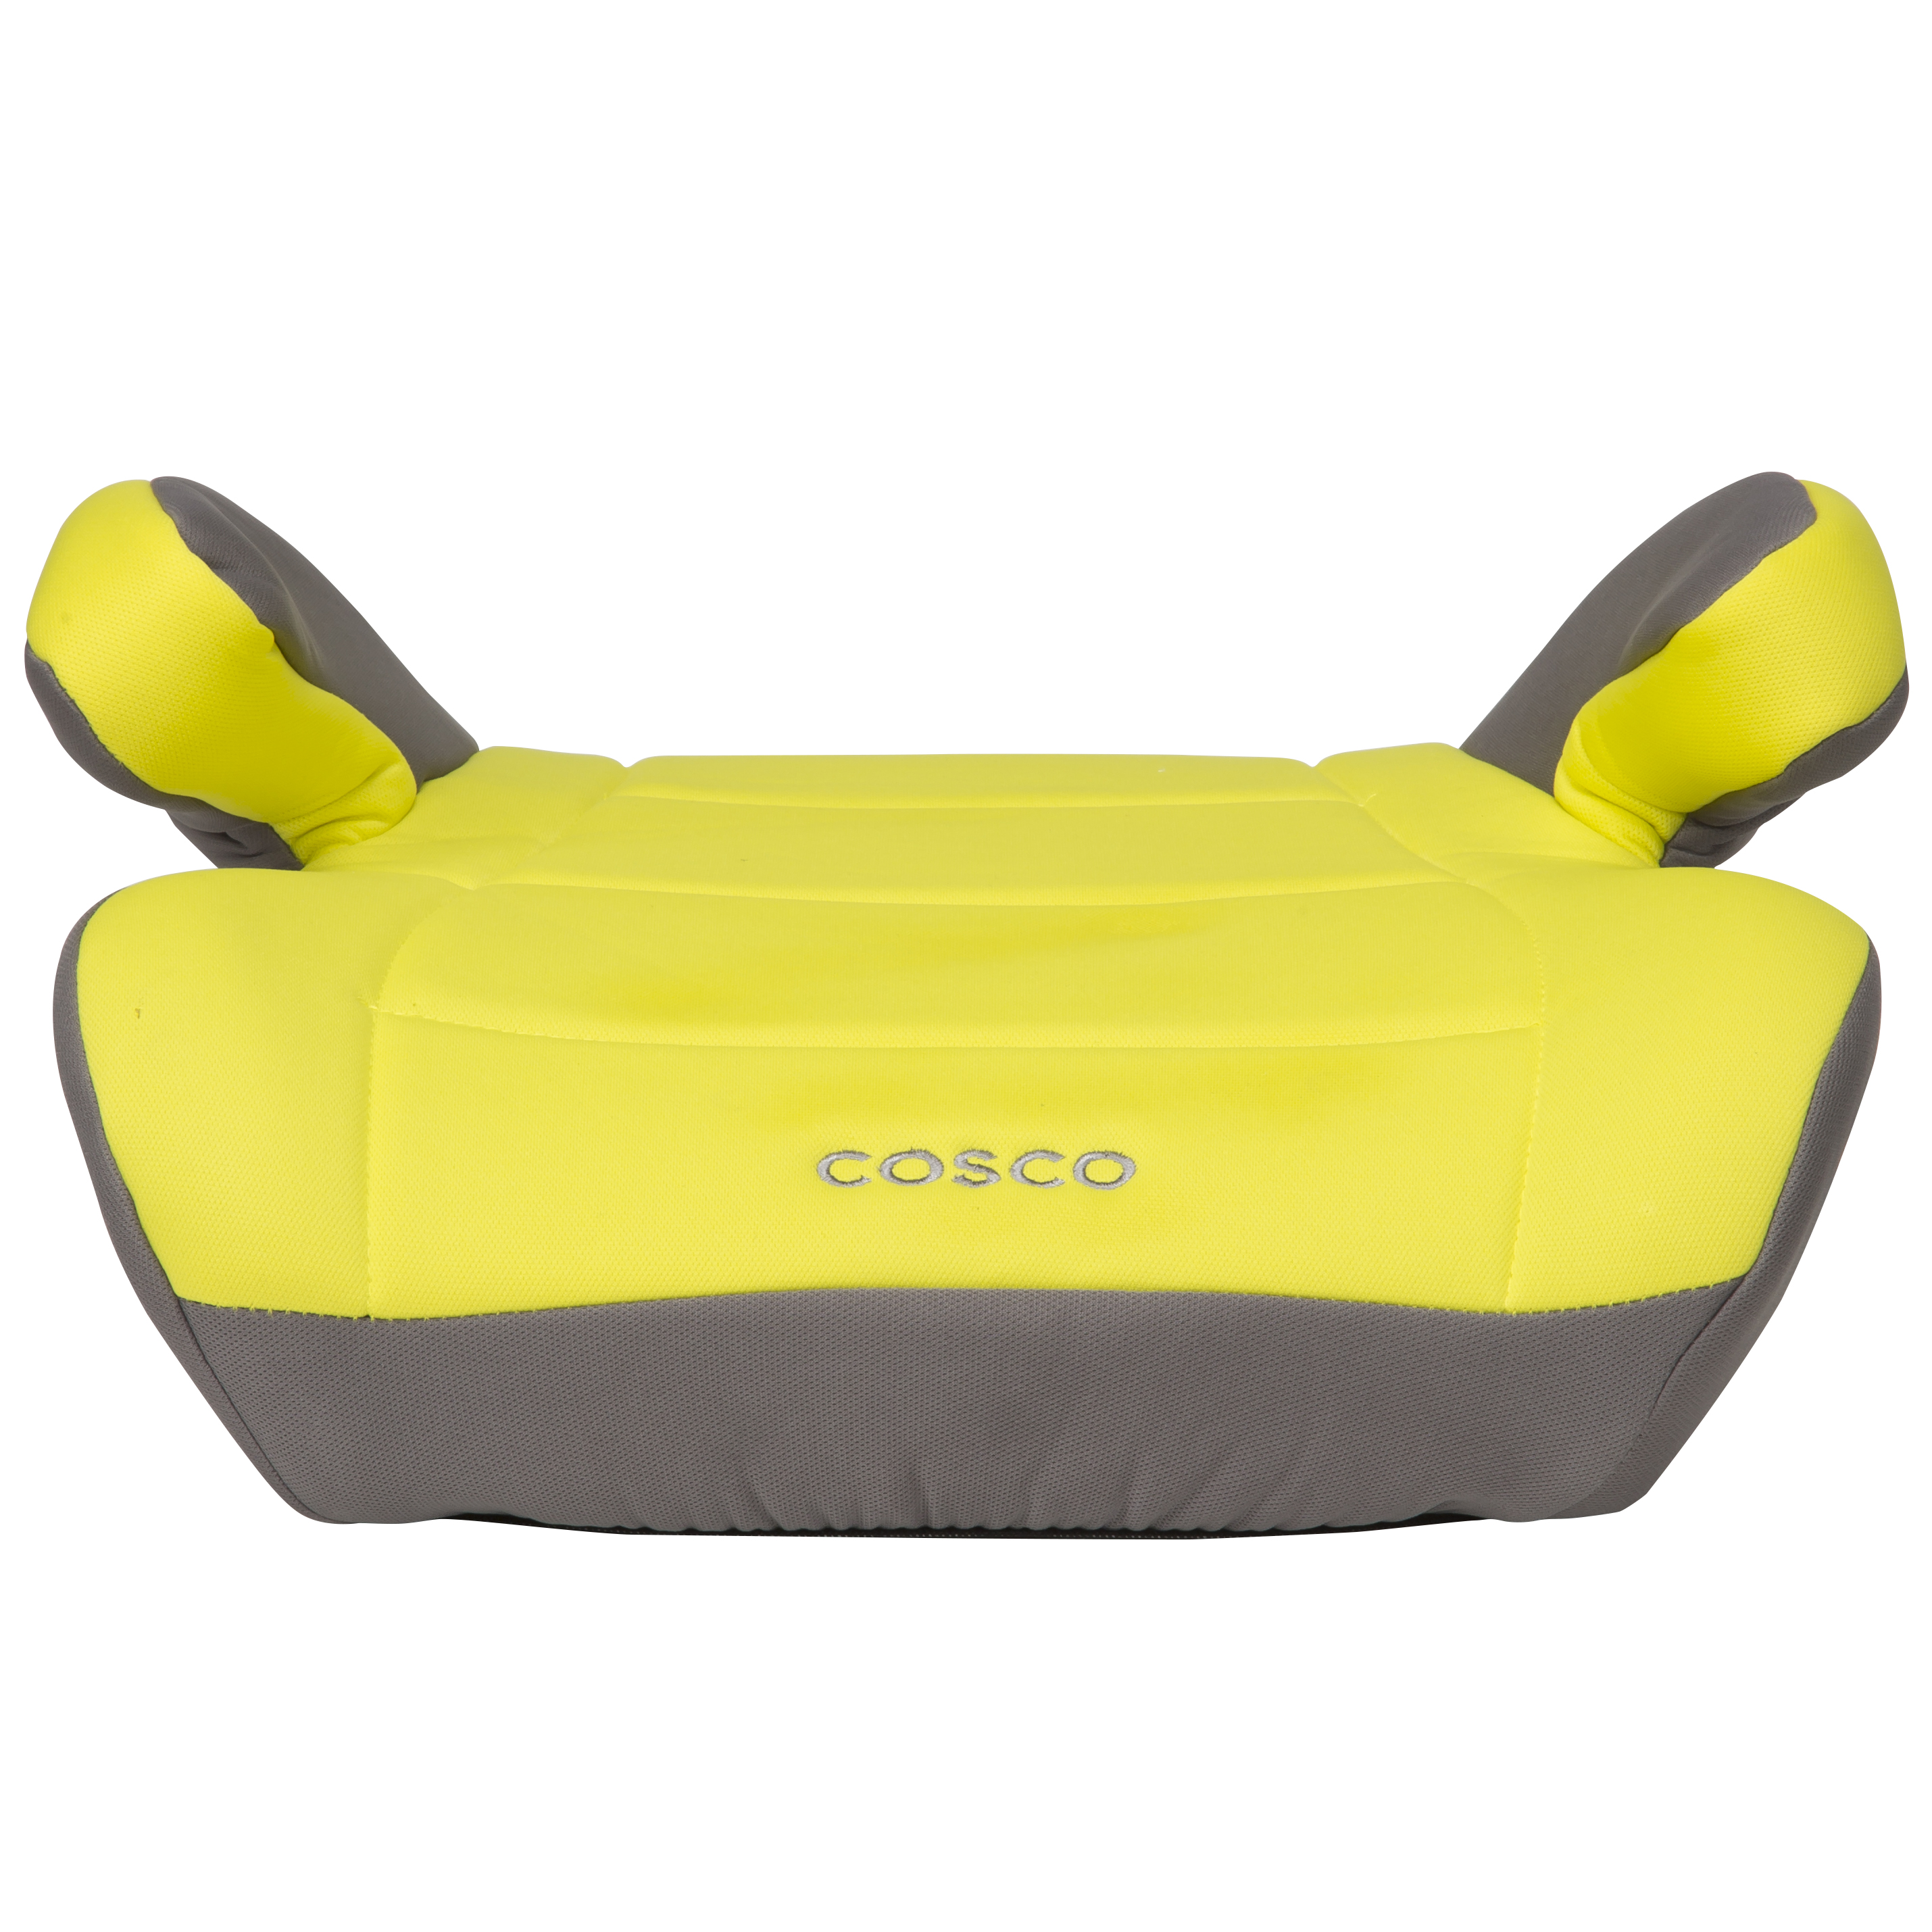 Cosco Topside Booster Car Seat - Easy to Move, Lightweight Design ...